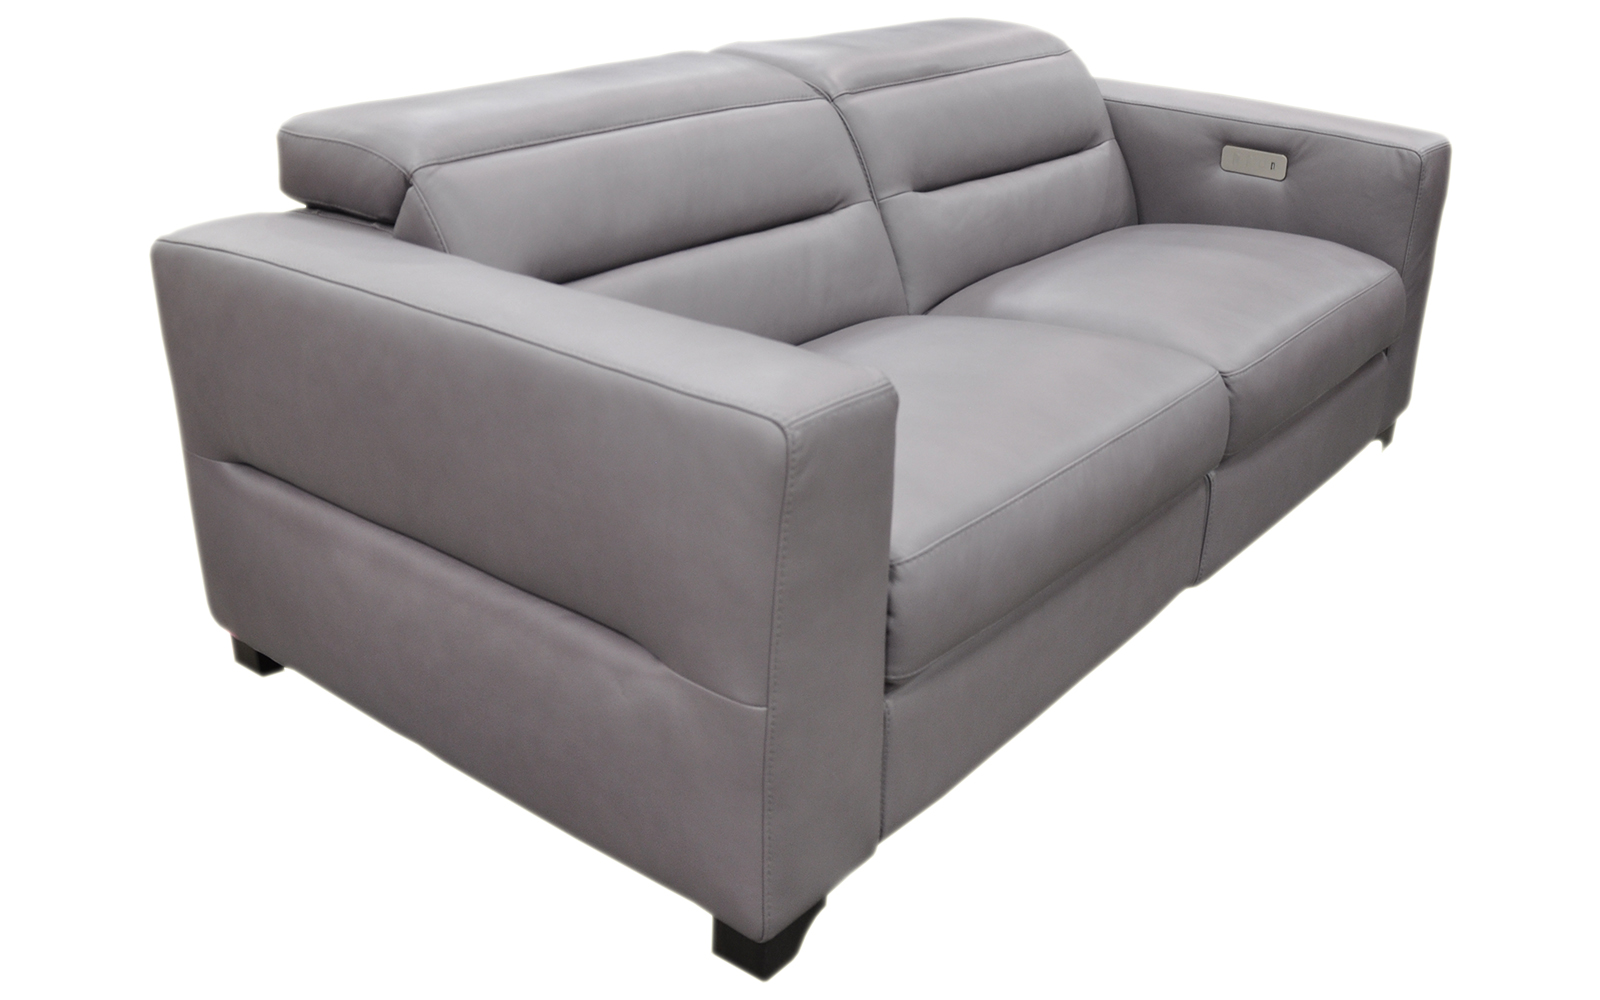 Fantastic Bergamo Moderno 24 28 32 Reclining Sectional Available Pabps2019 Chair Design Images Pabps2019Com